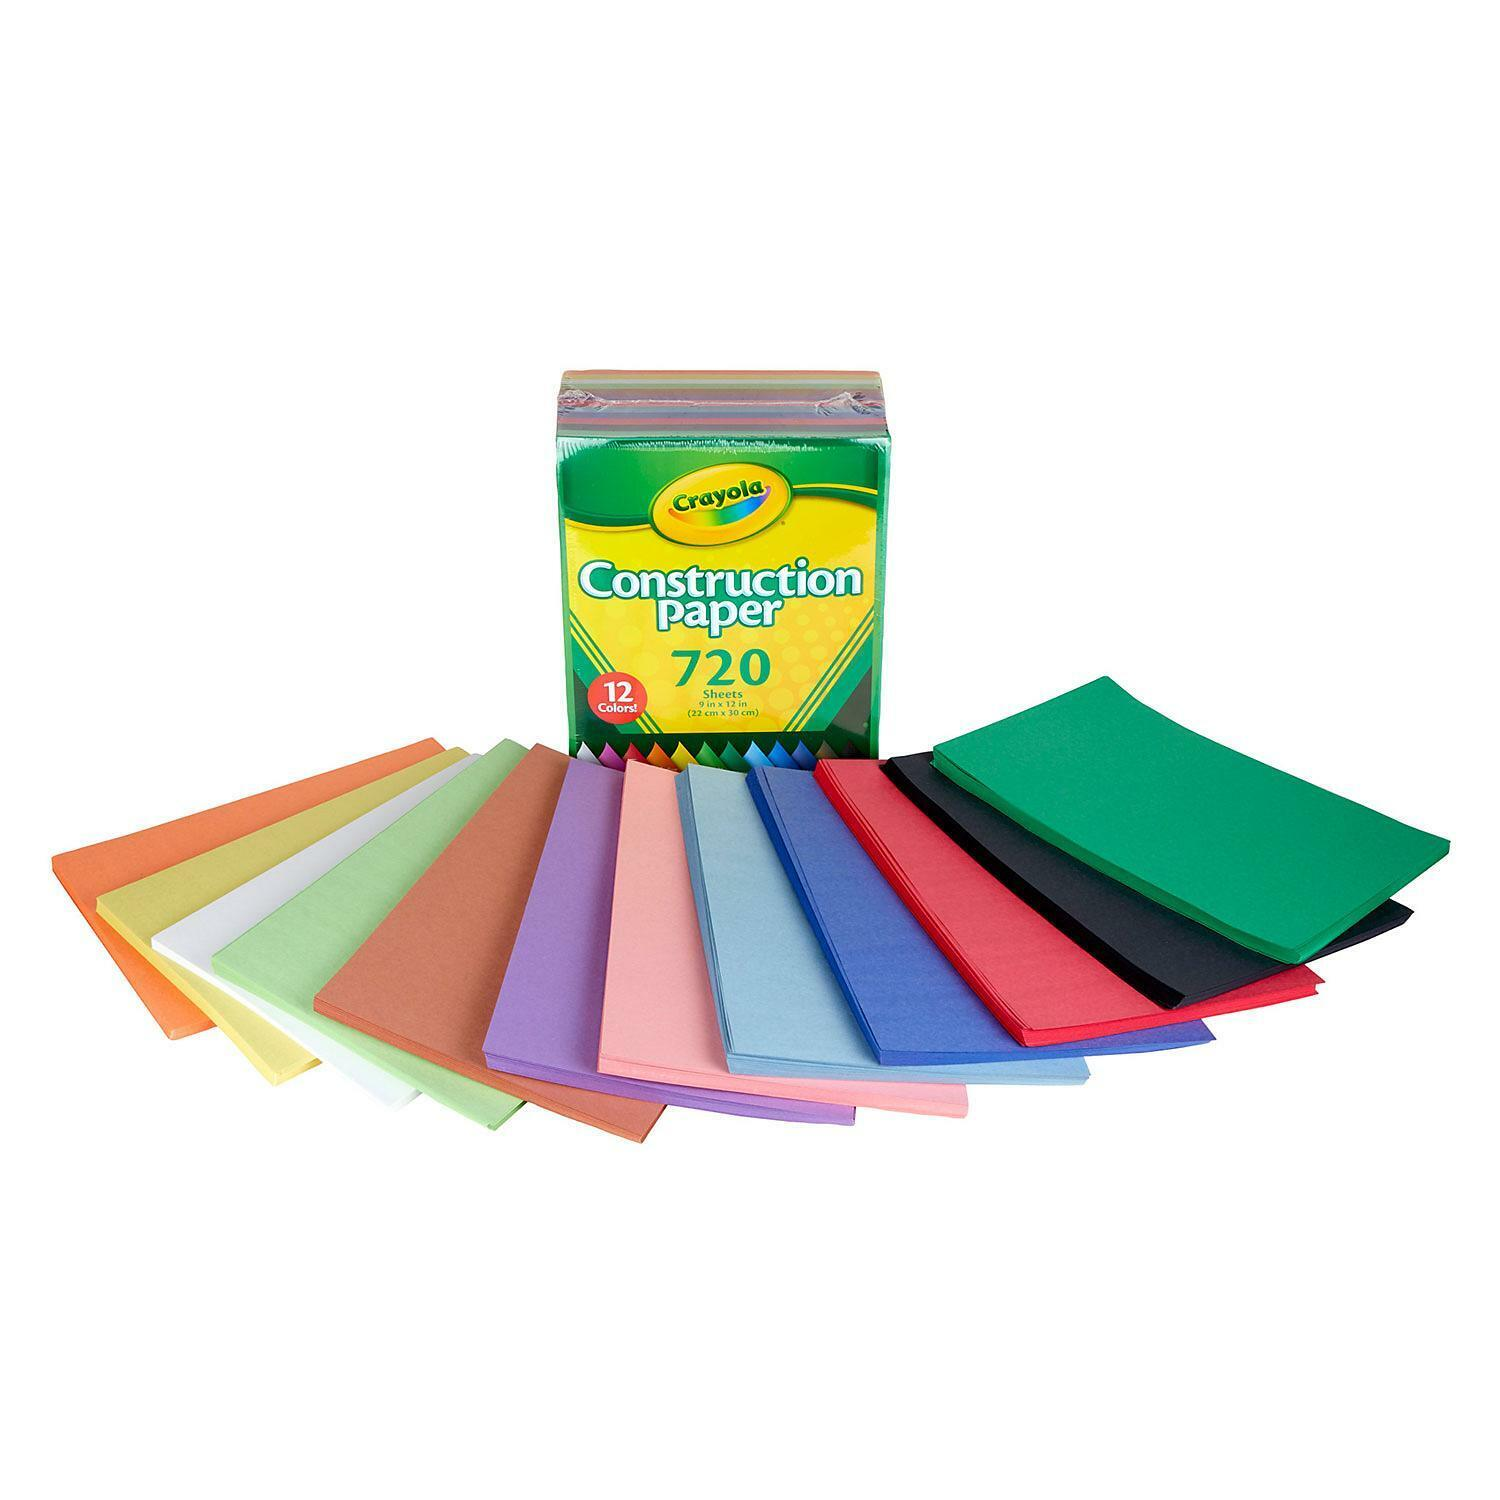 12 Assorted Colors 720 ct. Crayola Bulk Construction Paper